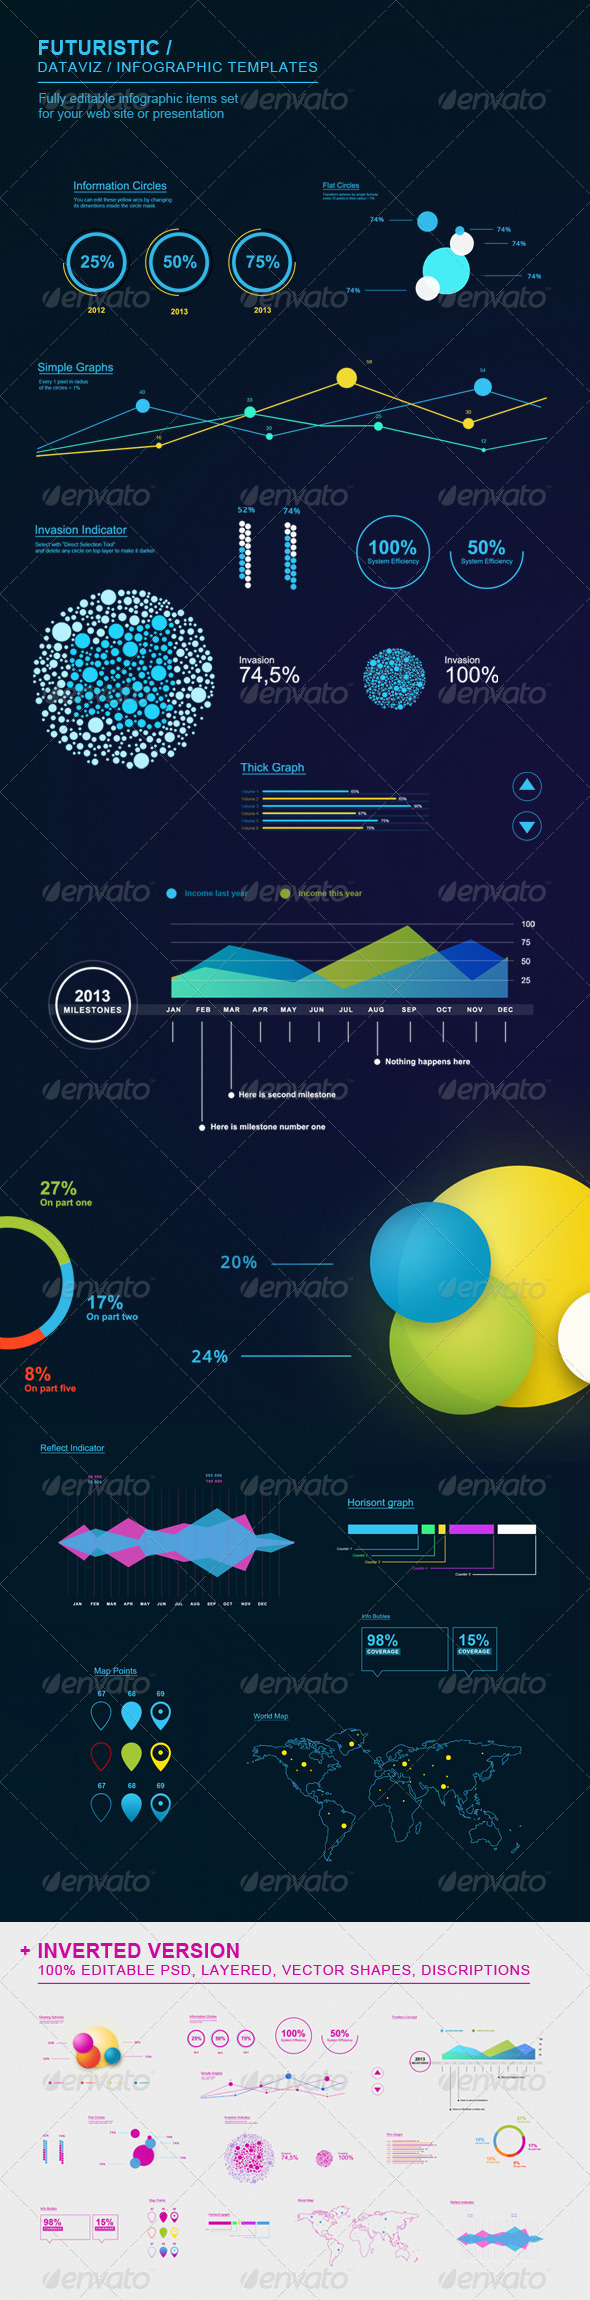 GraphicRiver Futuristic Infographic Elements Set 3240765